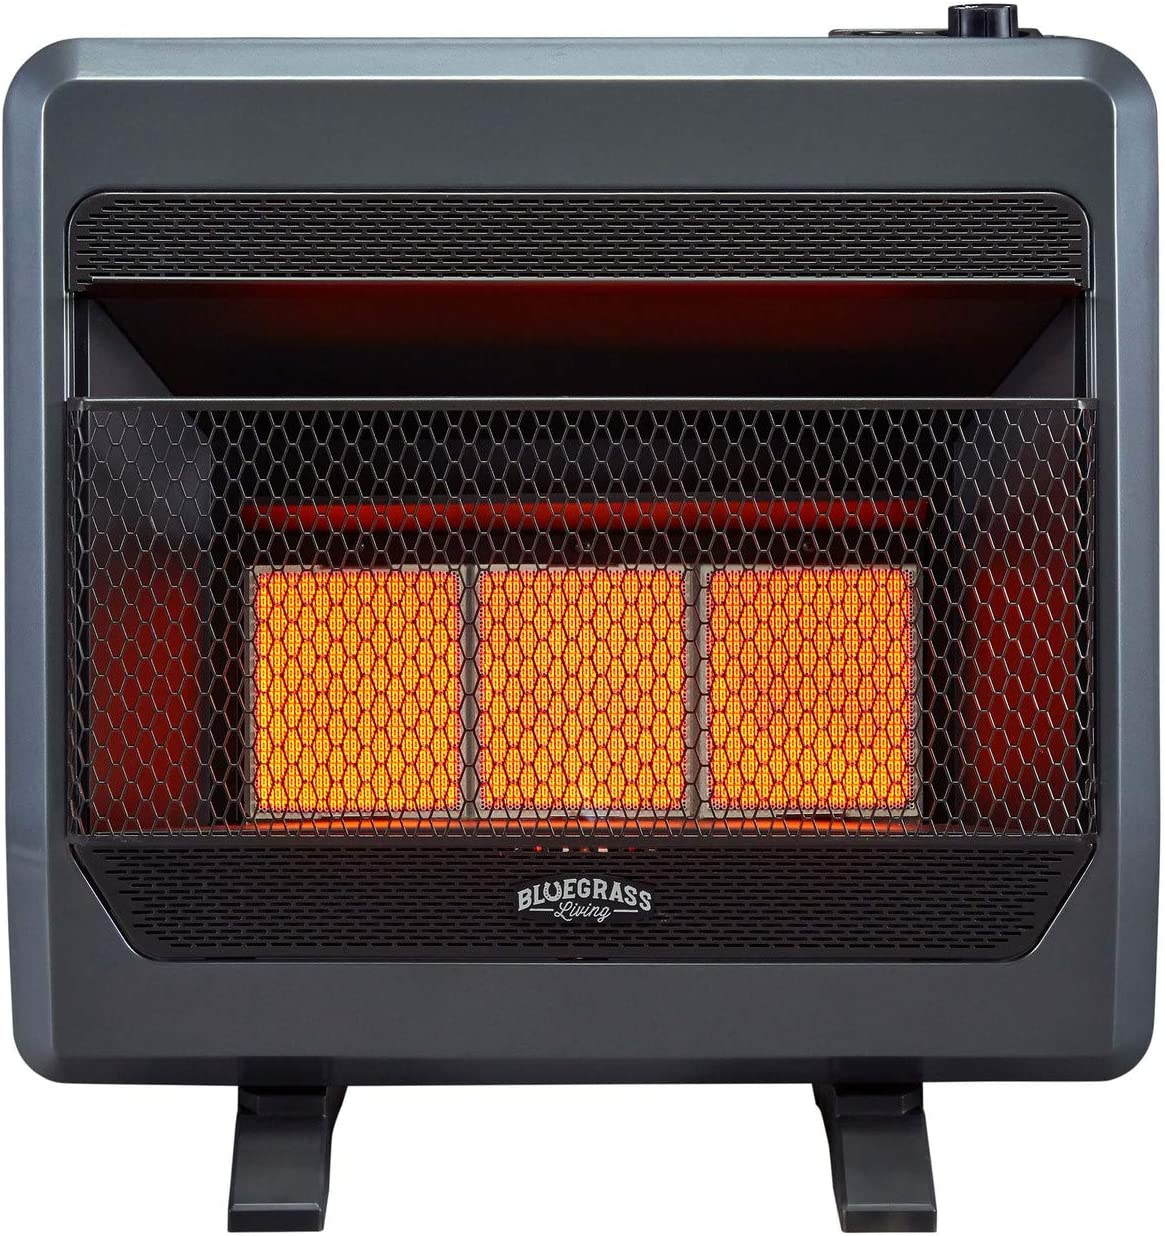 Amazon Com Bluegrass Living B28tpir Bb Propane Vent Free Infrared Gas Space Heater With Blower And Base Feet 28 000 T Stat Control 30 000 Btu Black Home Kitchen